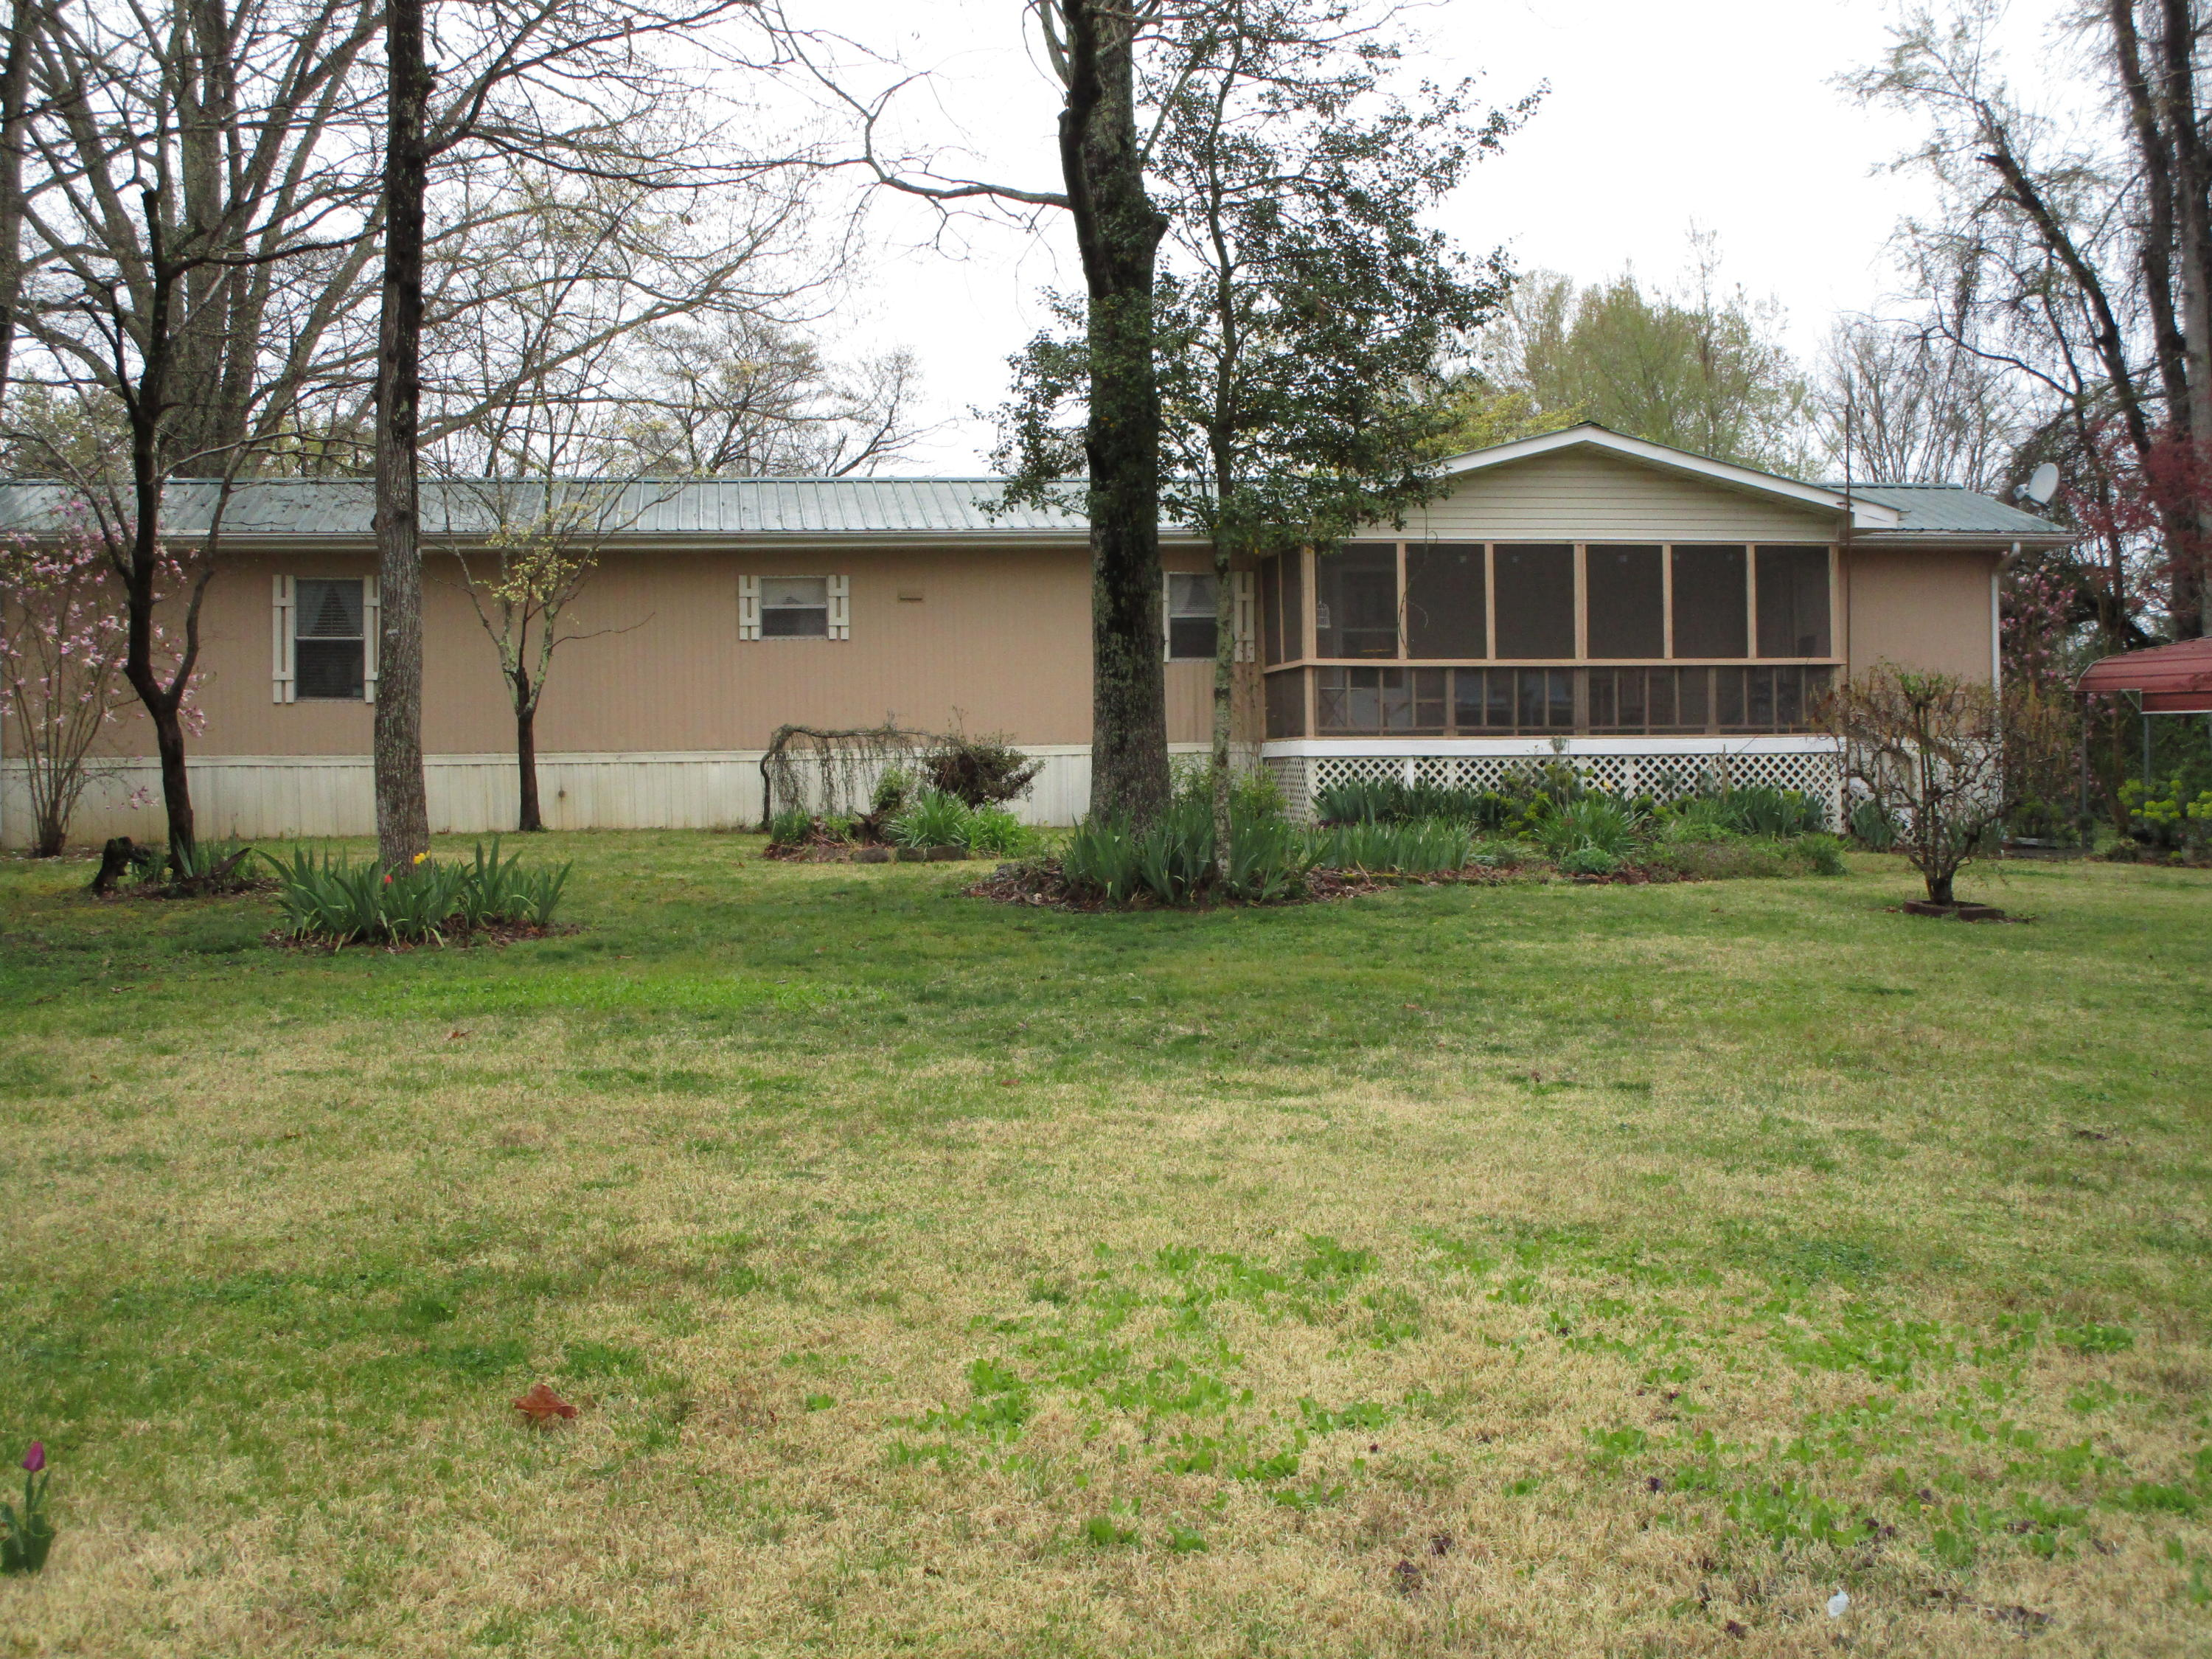 381 Blue Springs Circle, Ten Mile, Tennessee 37880, 3 Bedrooms Bedrooms, ,2 BathroomsBathrooms,Single Family,For Sale,Blue Springs,1075675